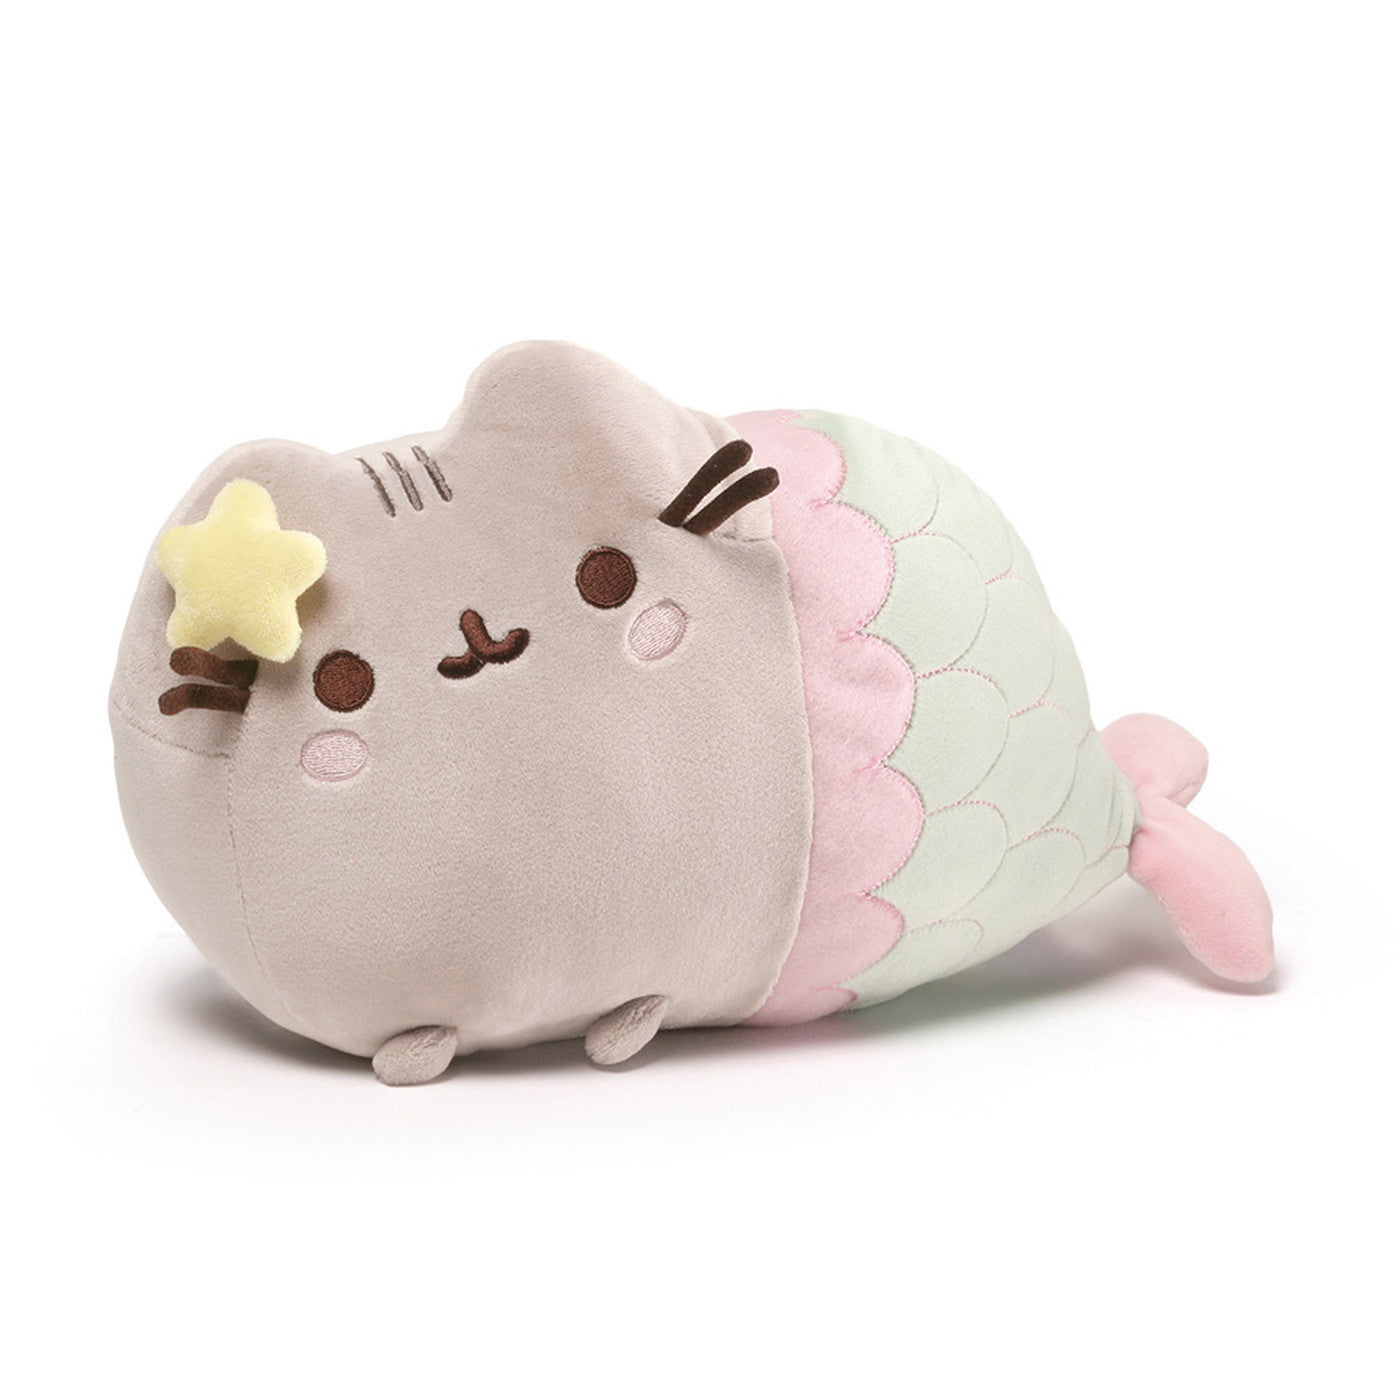 Pusheen the Cat Mermaid Plush